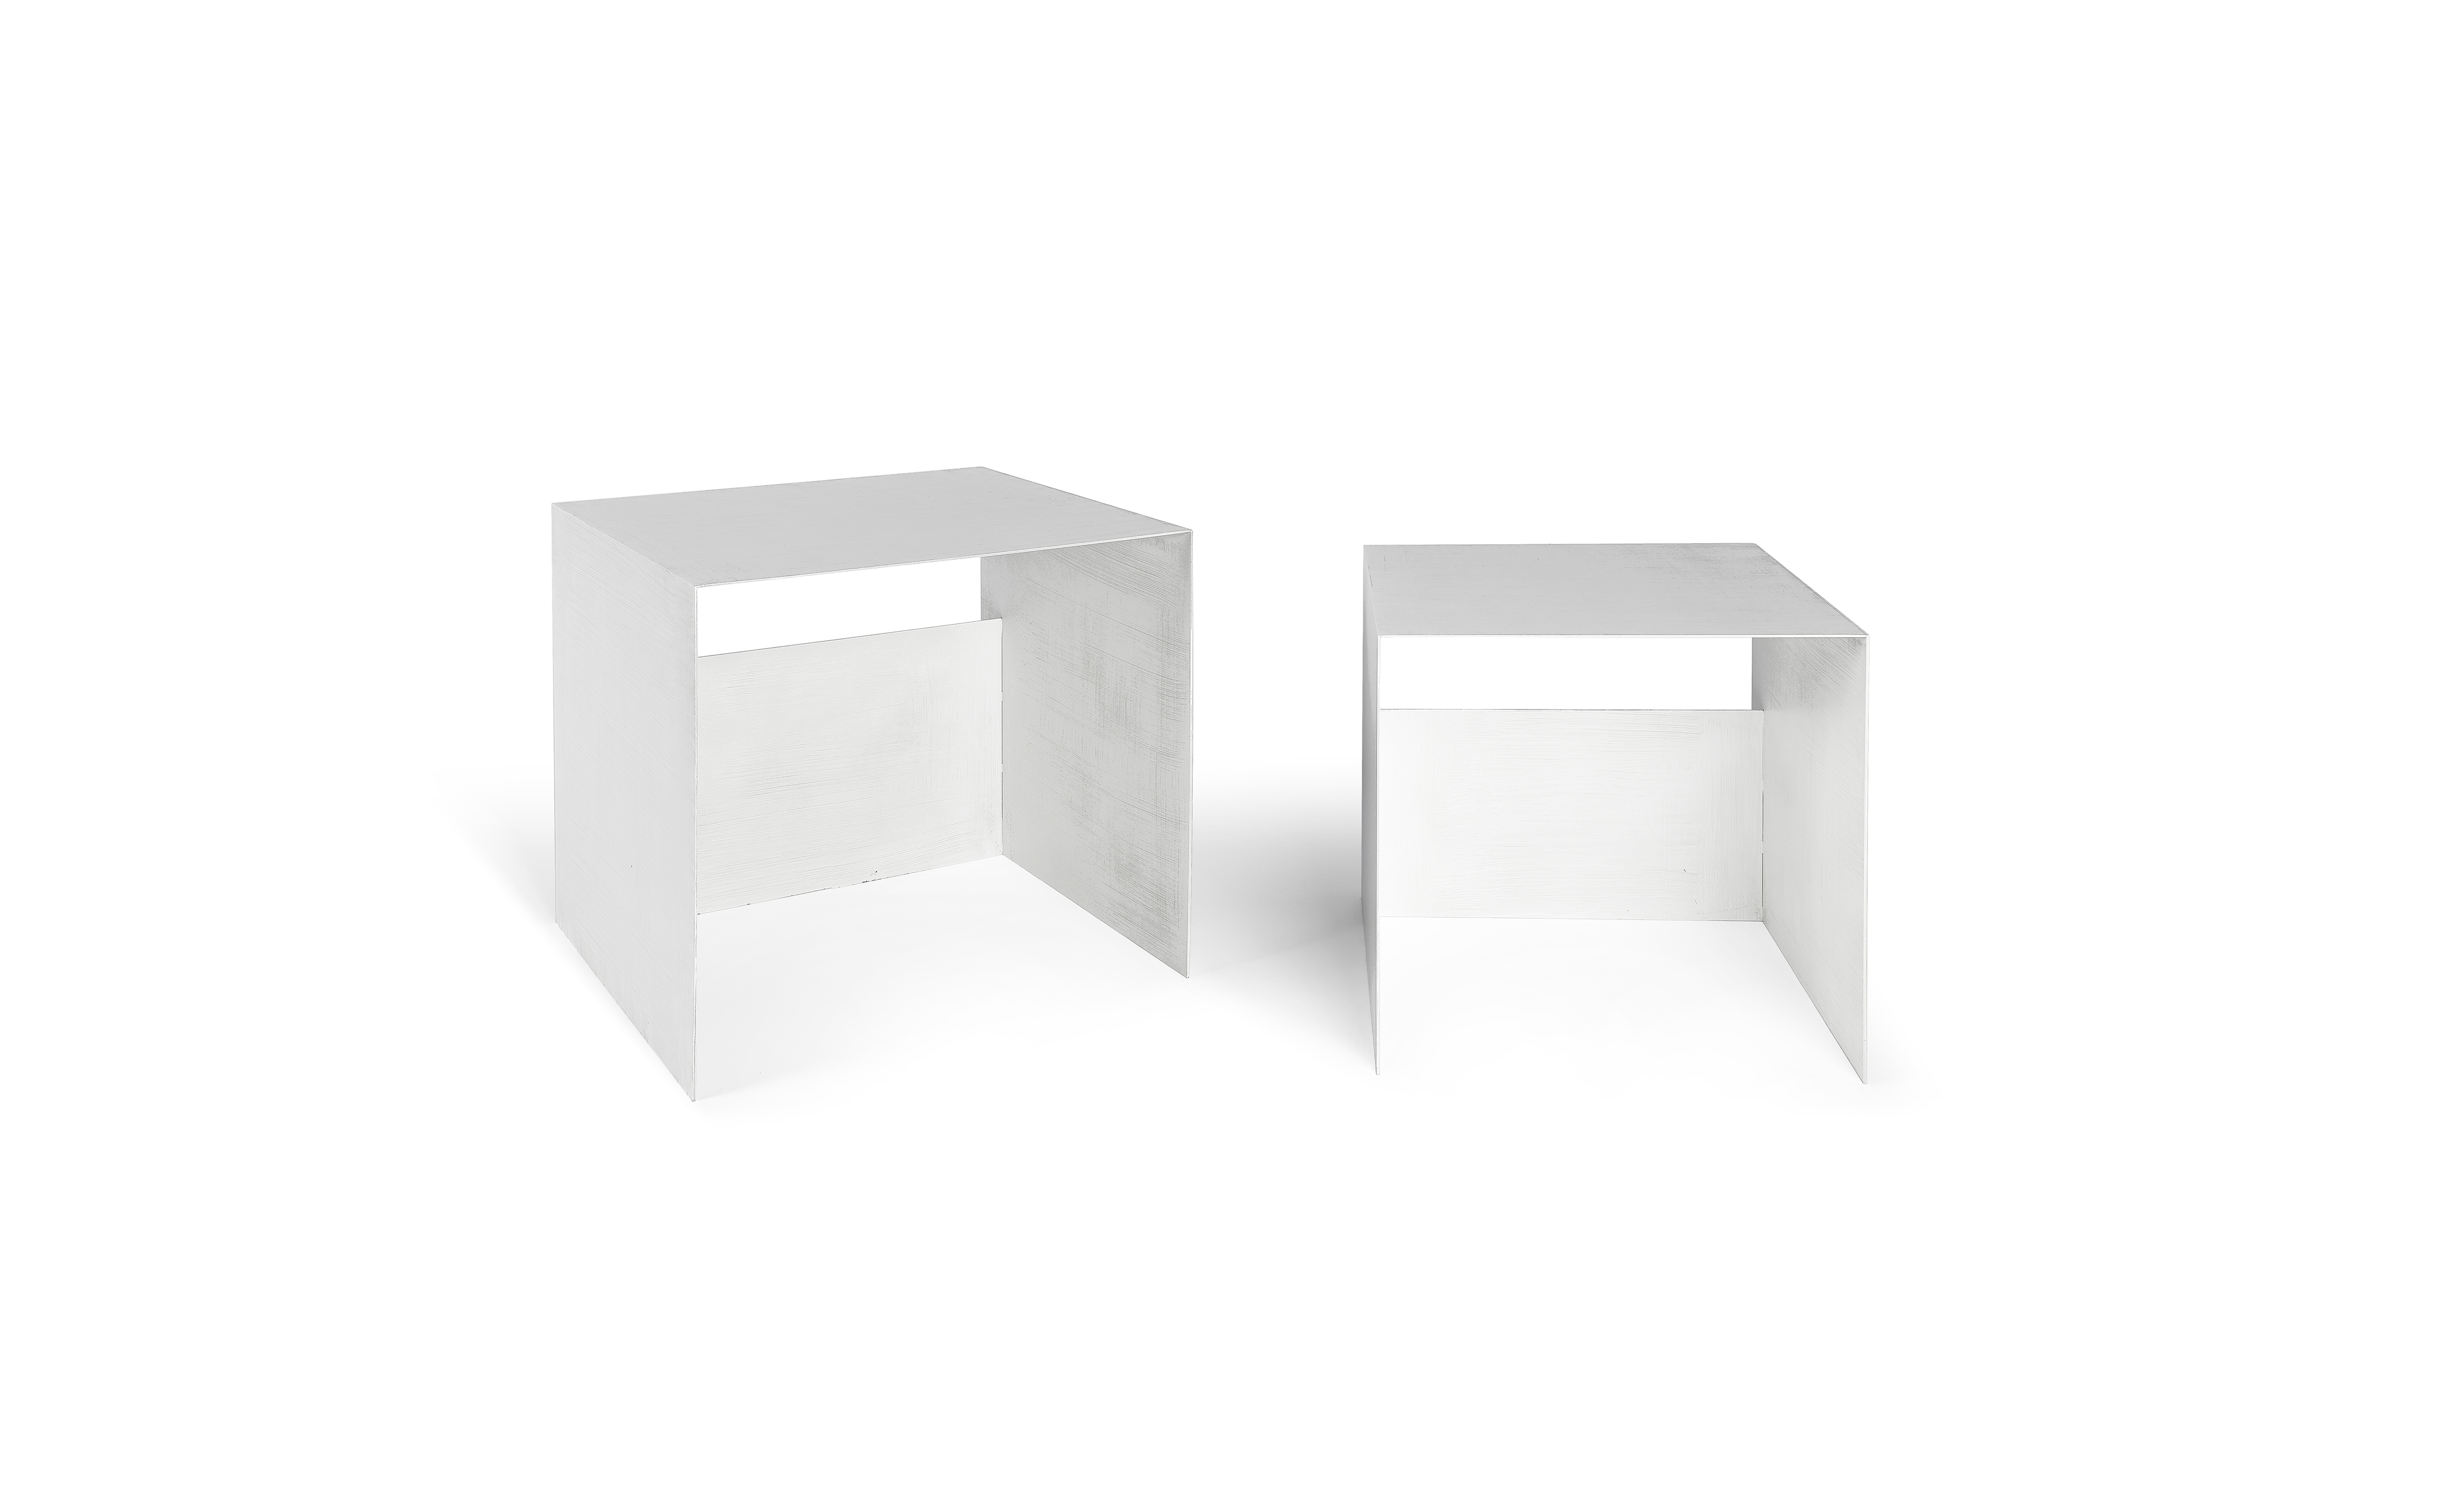 Guido set of 2 Coffee Tables in Iron - guido set of 2 coffee tables in iron - signal white 7040 - merk: Atipico